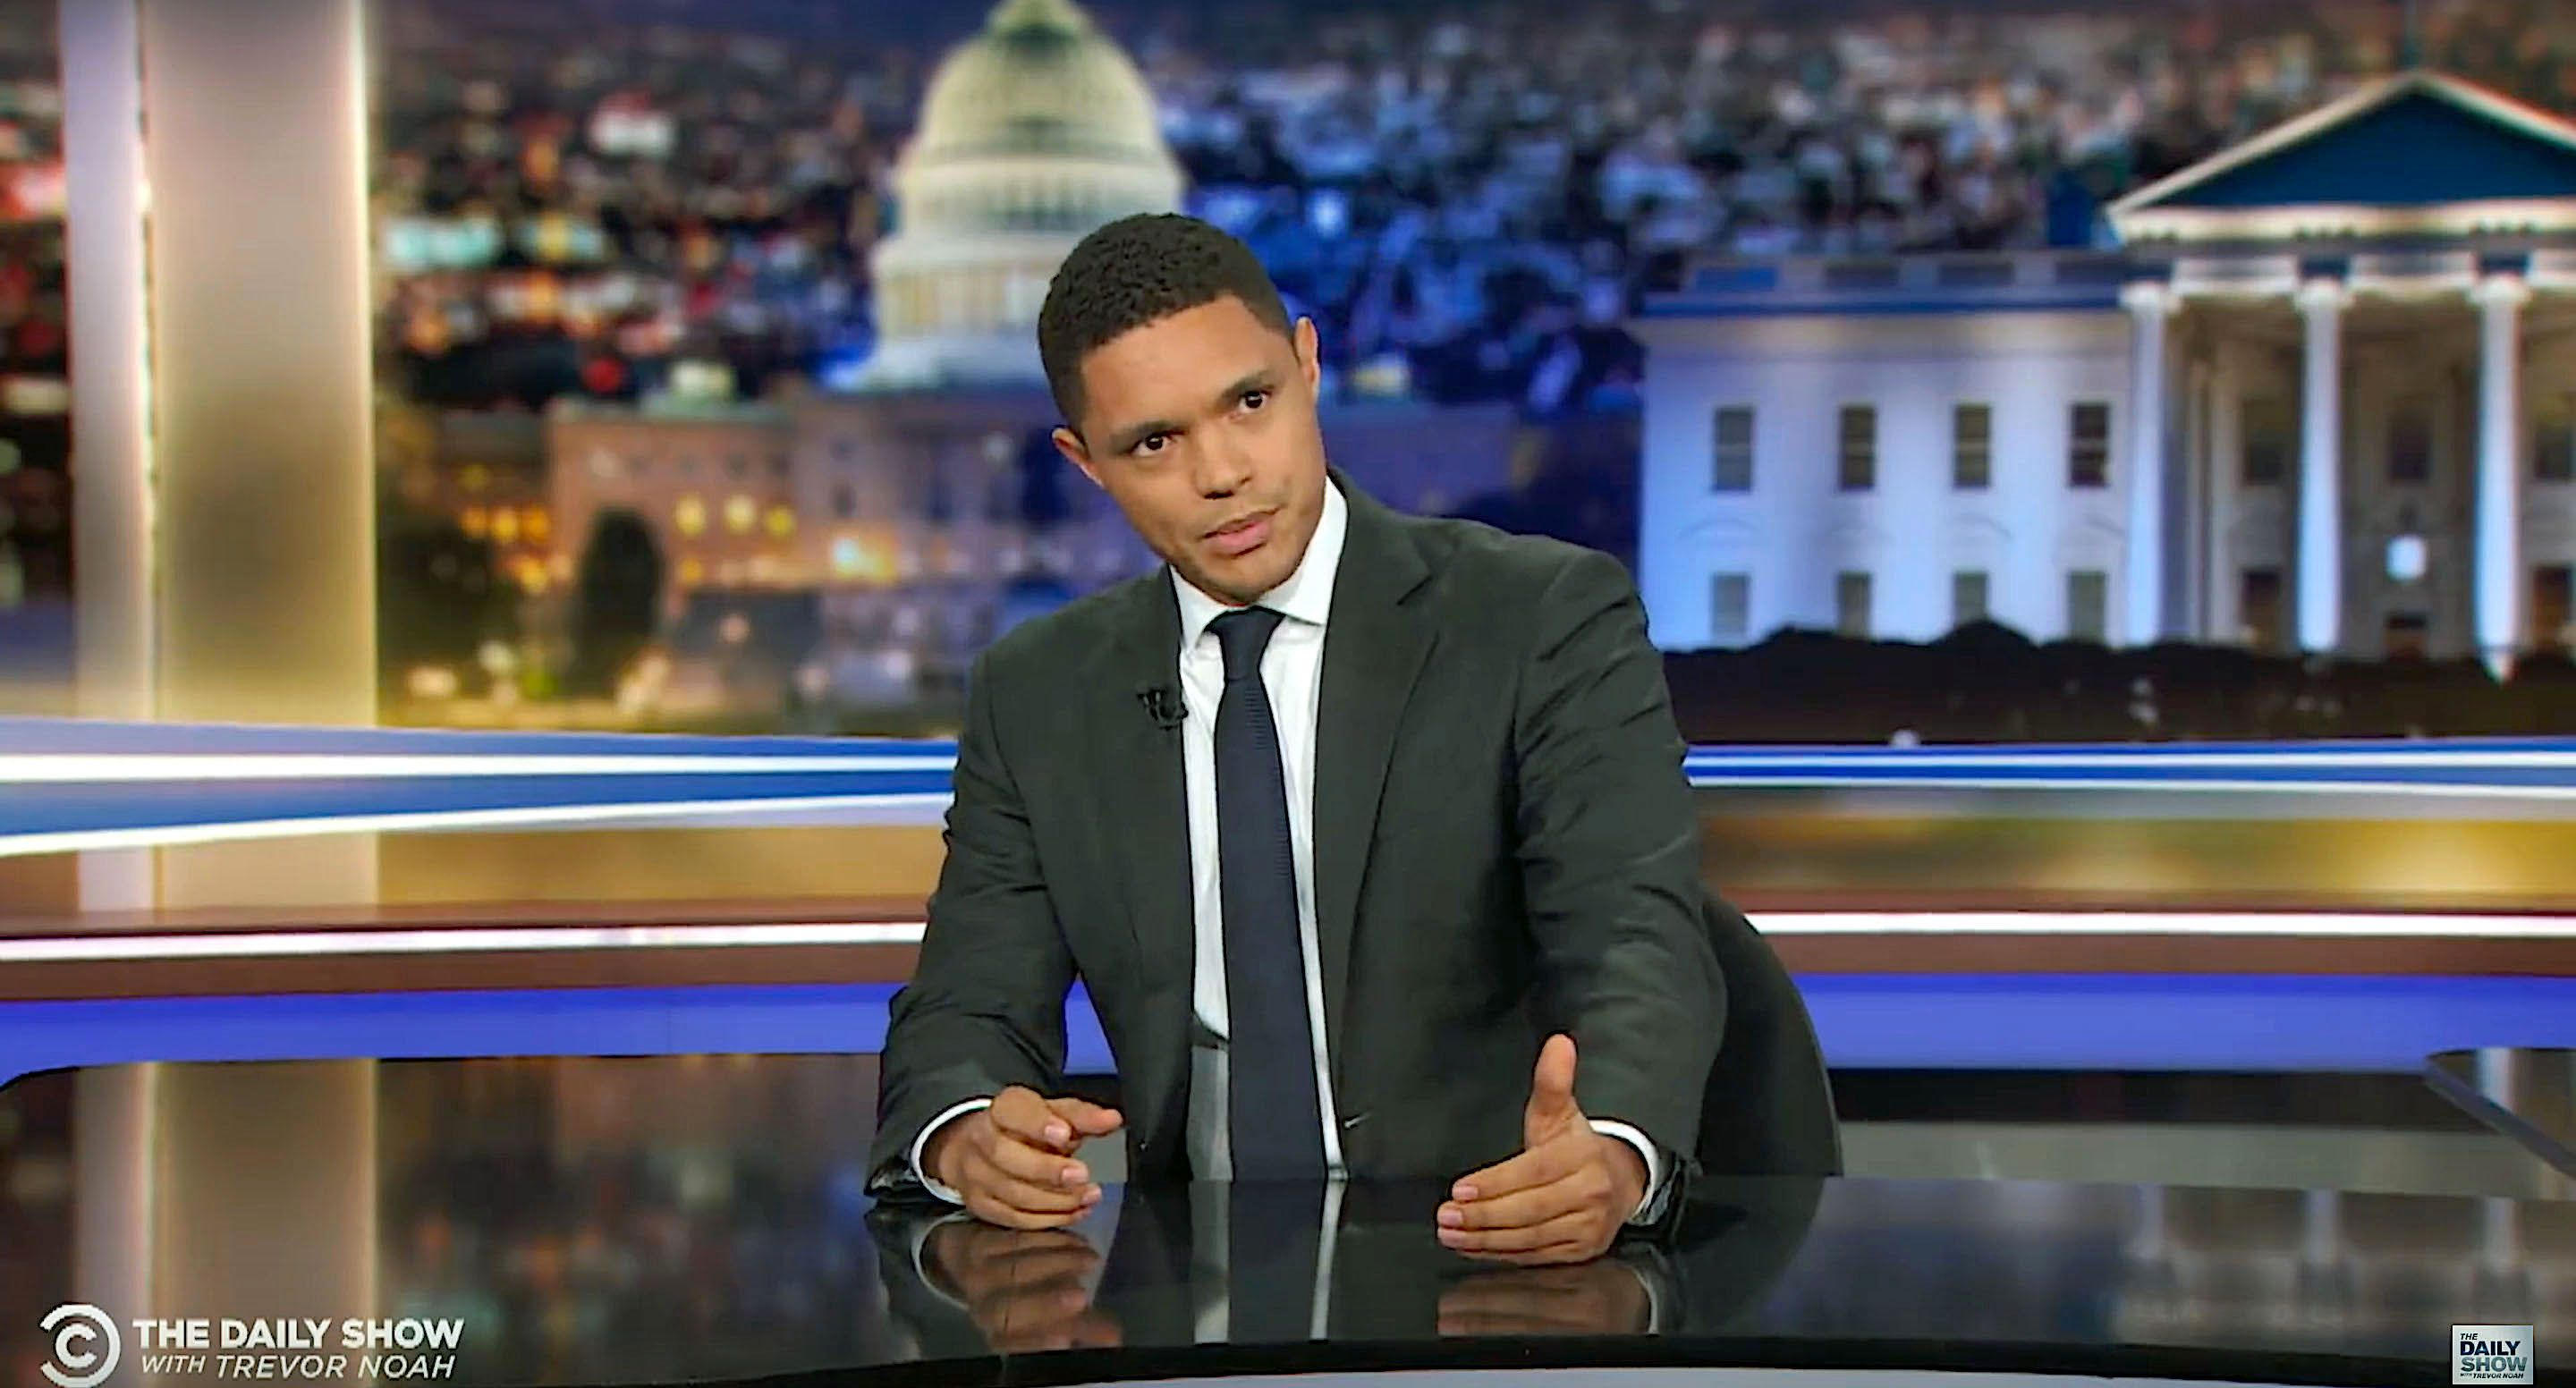 Trevor Noah of The Daily Show disputes Sen Orrin Hatchs defense of Supreme Court nominee Brett Kavanaugh